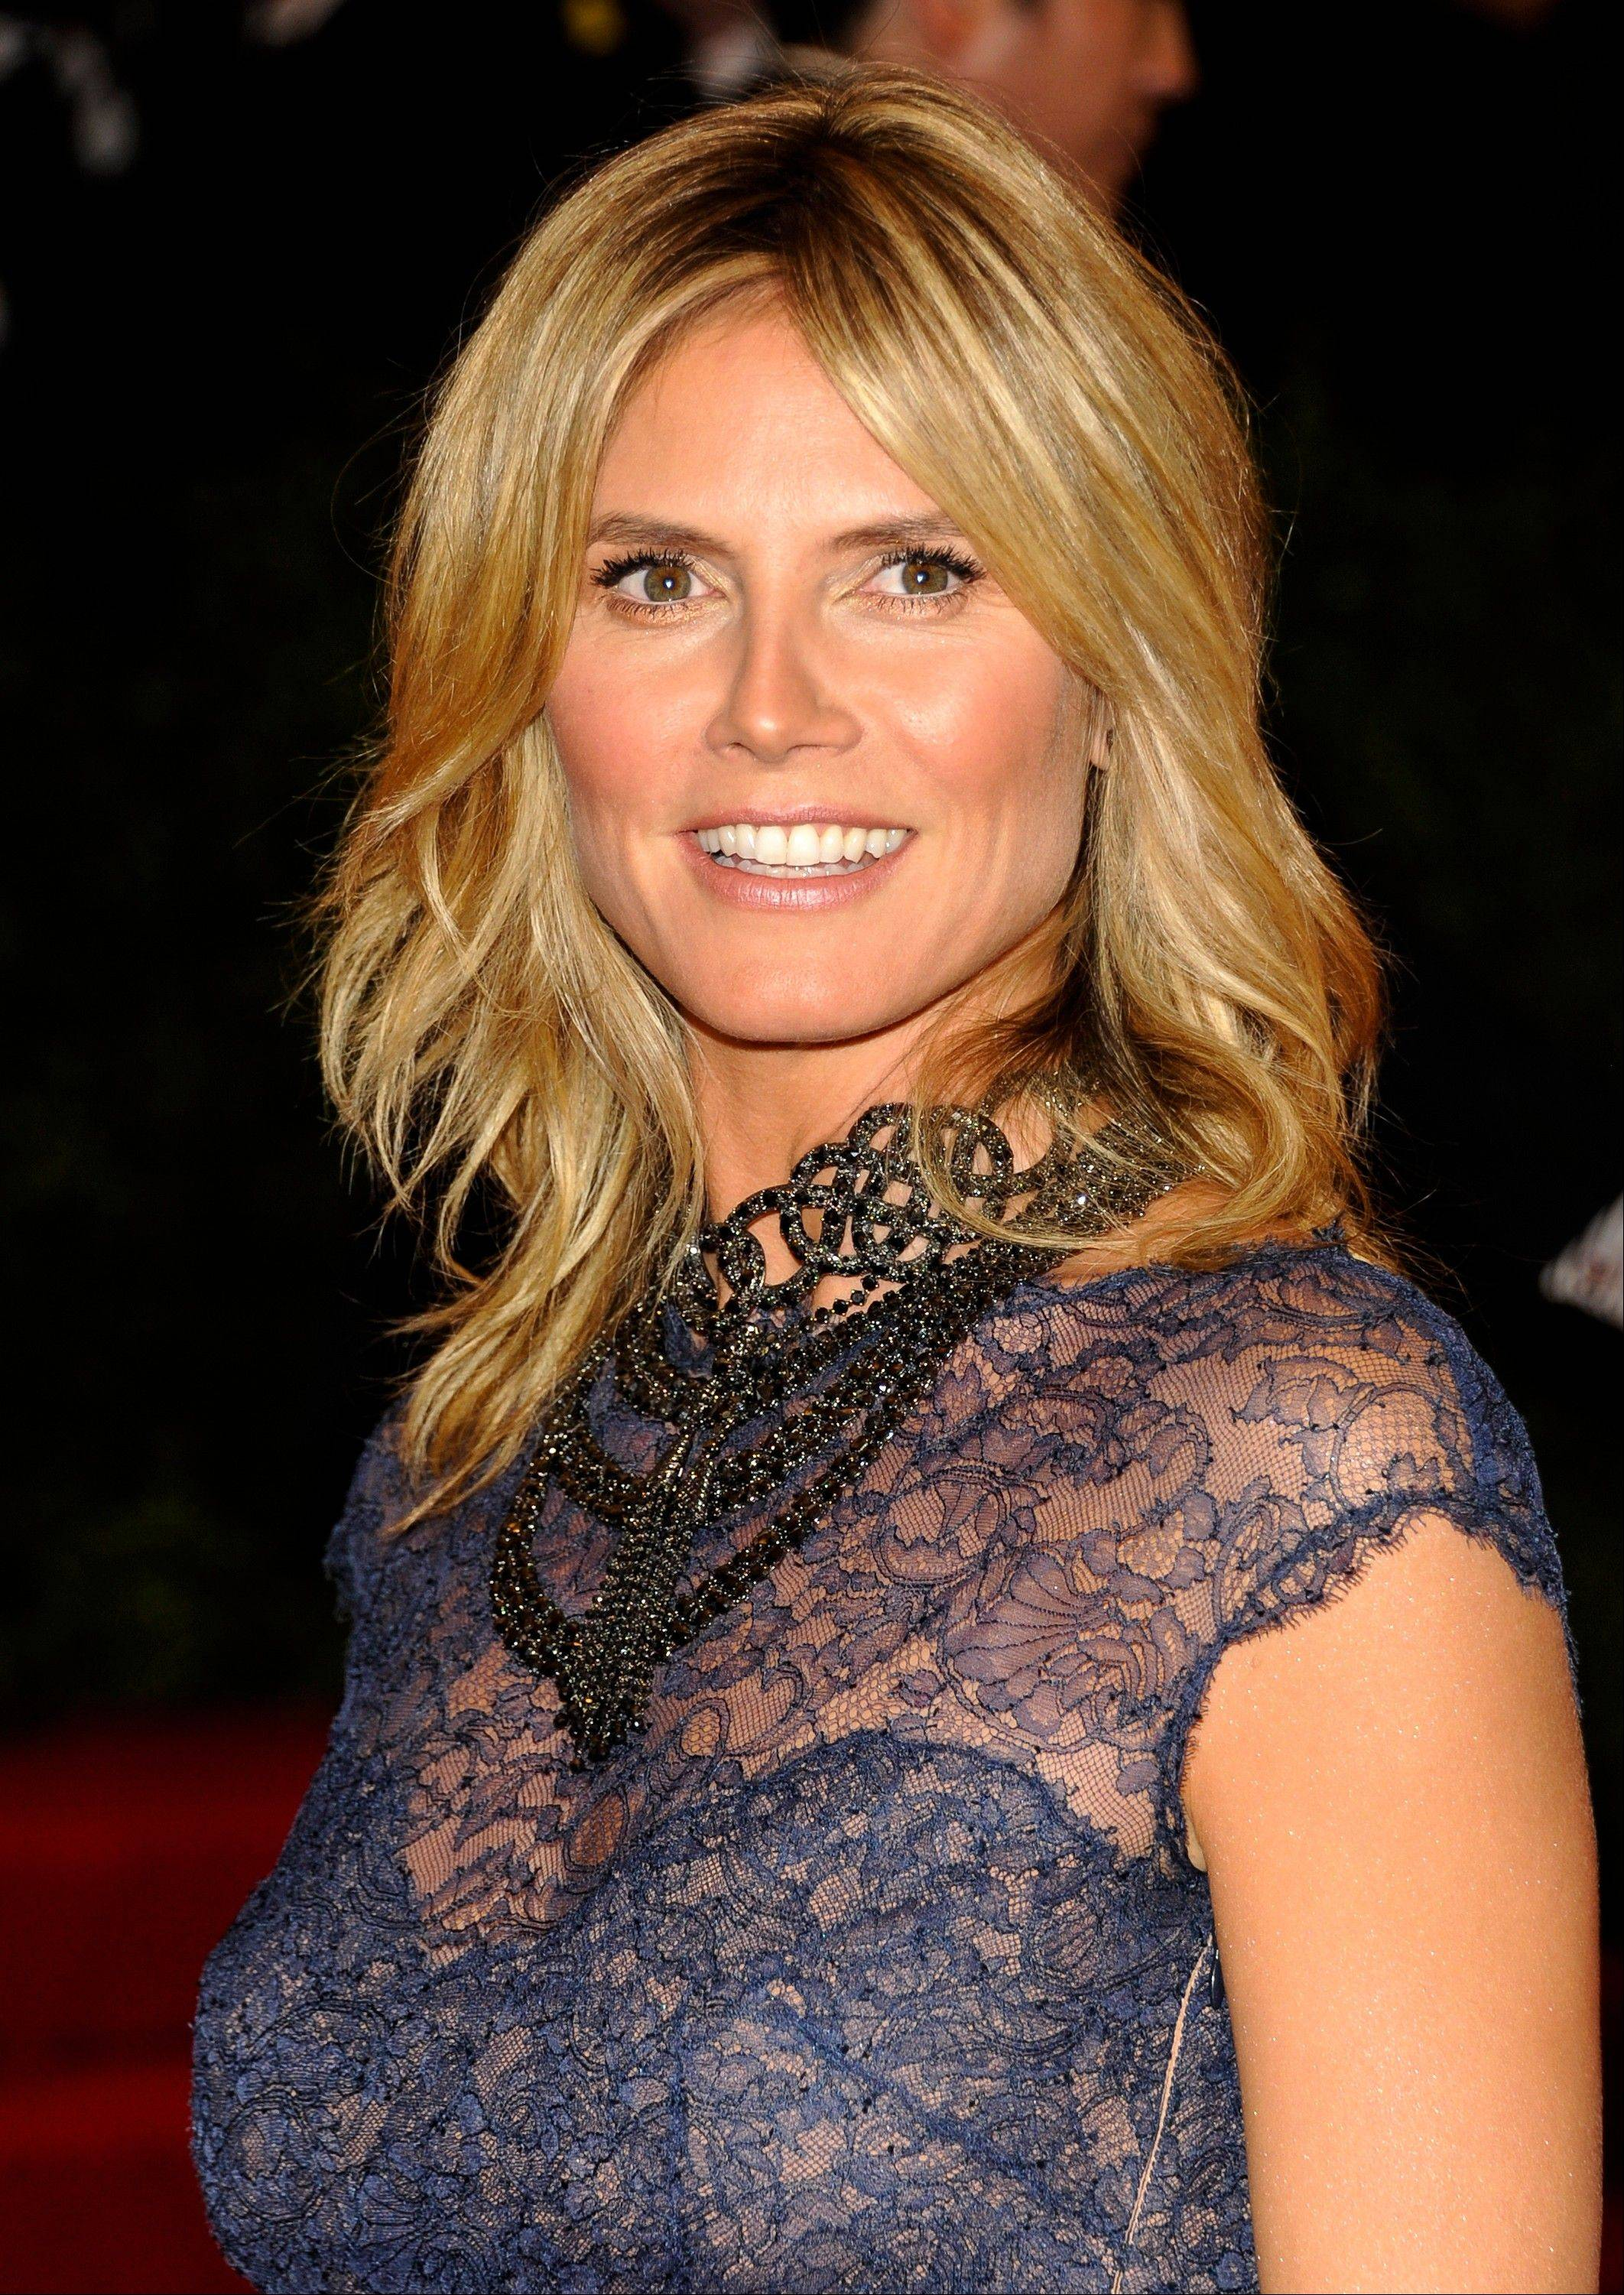 Model and TV host Heidi Klum is denying that she had an affair with her bodyguard while married to pop singer Seal. But now, having split from Seal, she says she is seeing the bodyguard.